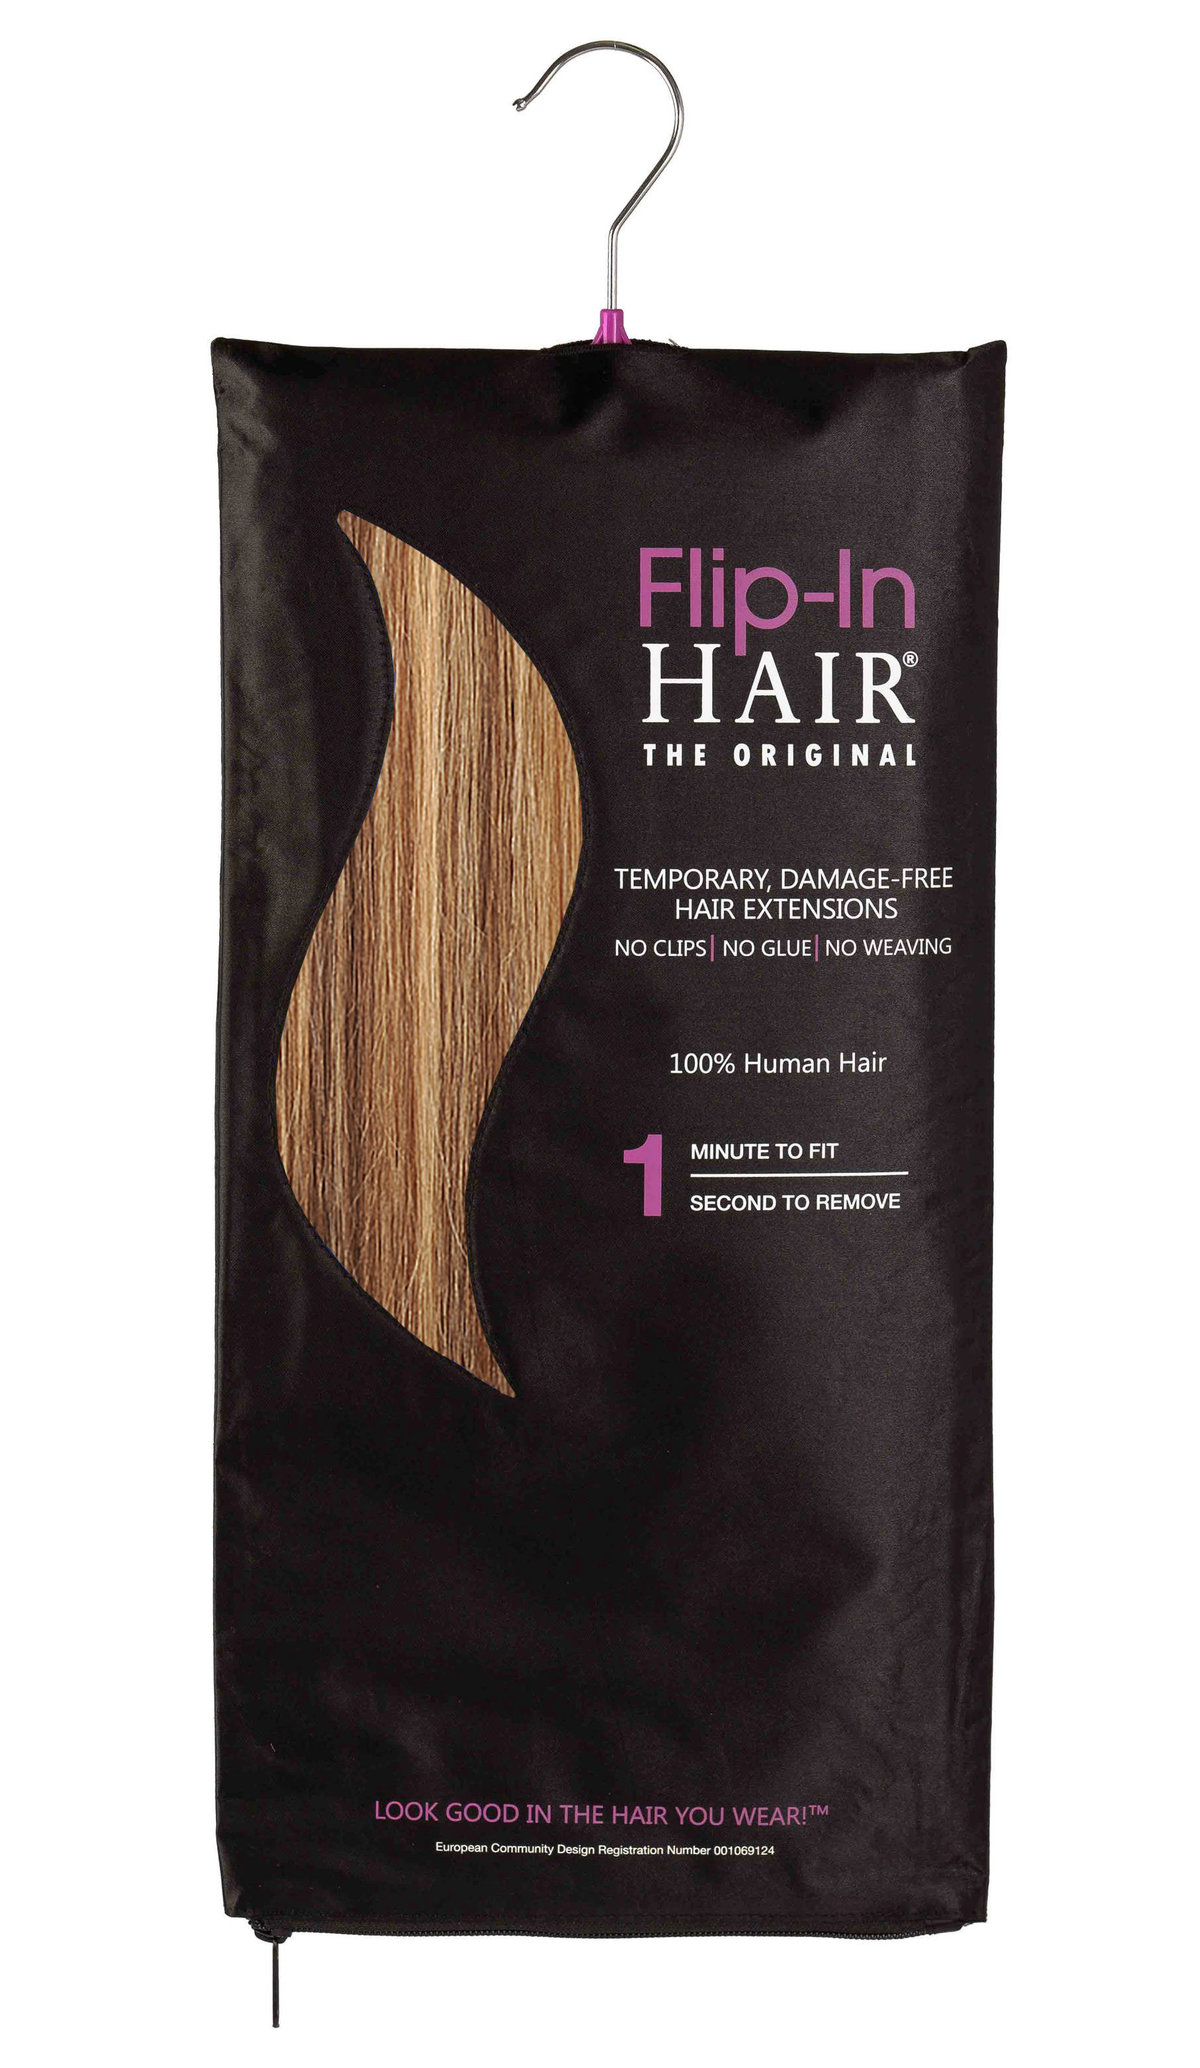 Flip-In Hair Original 6-27